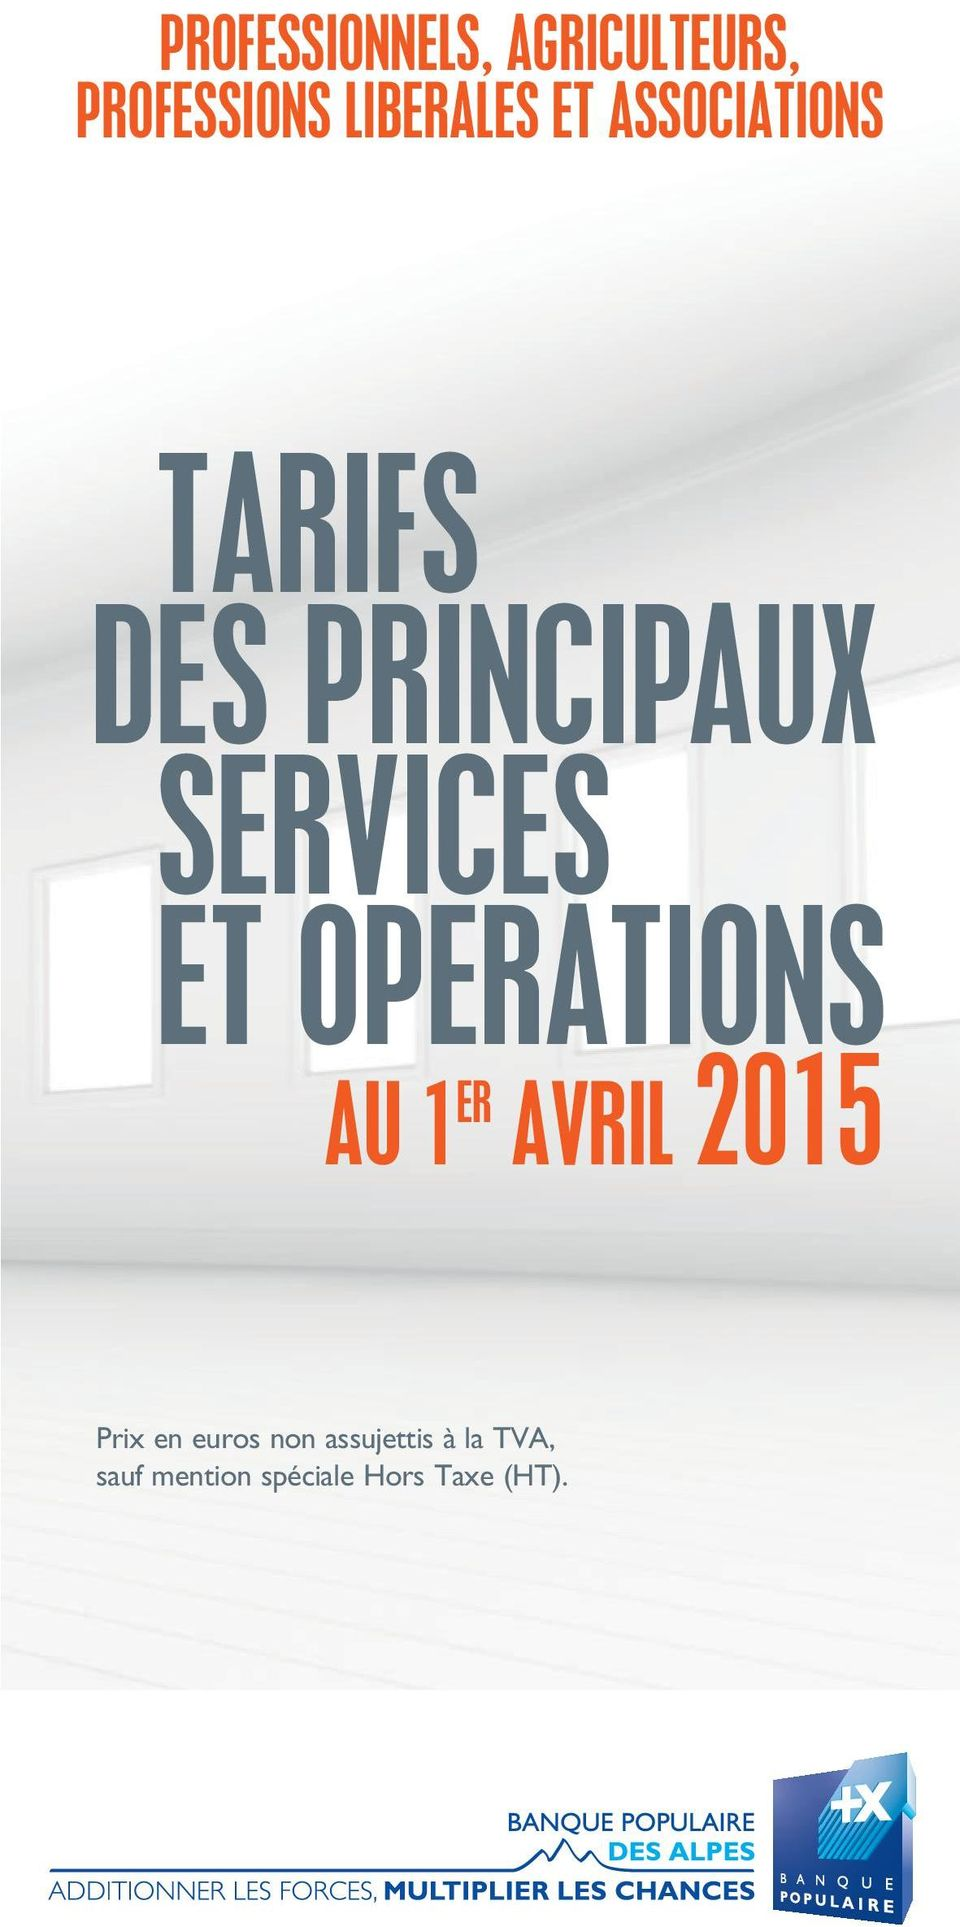 OPERATIONS AU 1 ER AVRIL 2015 Prix en euros non